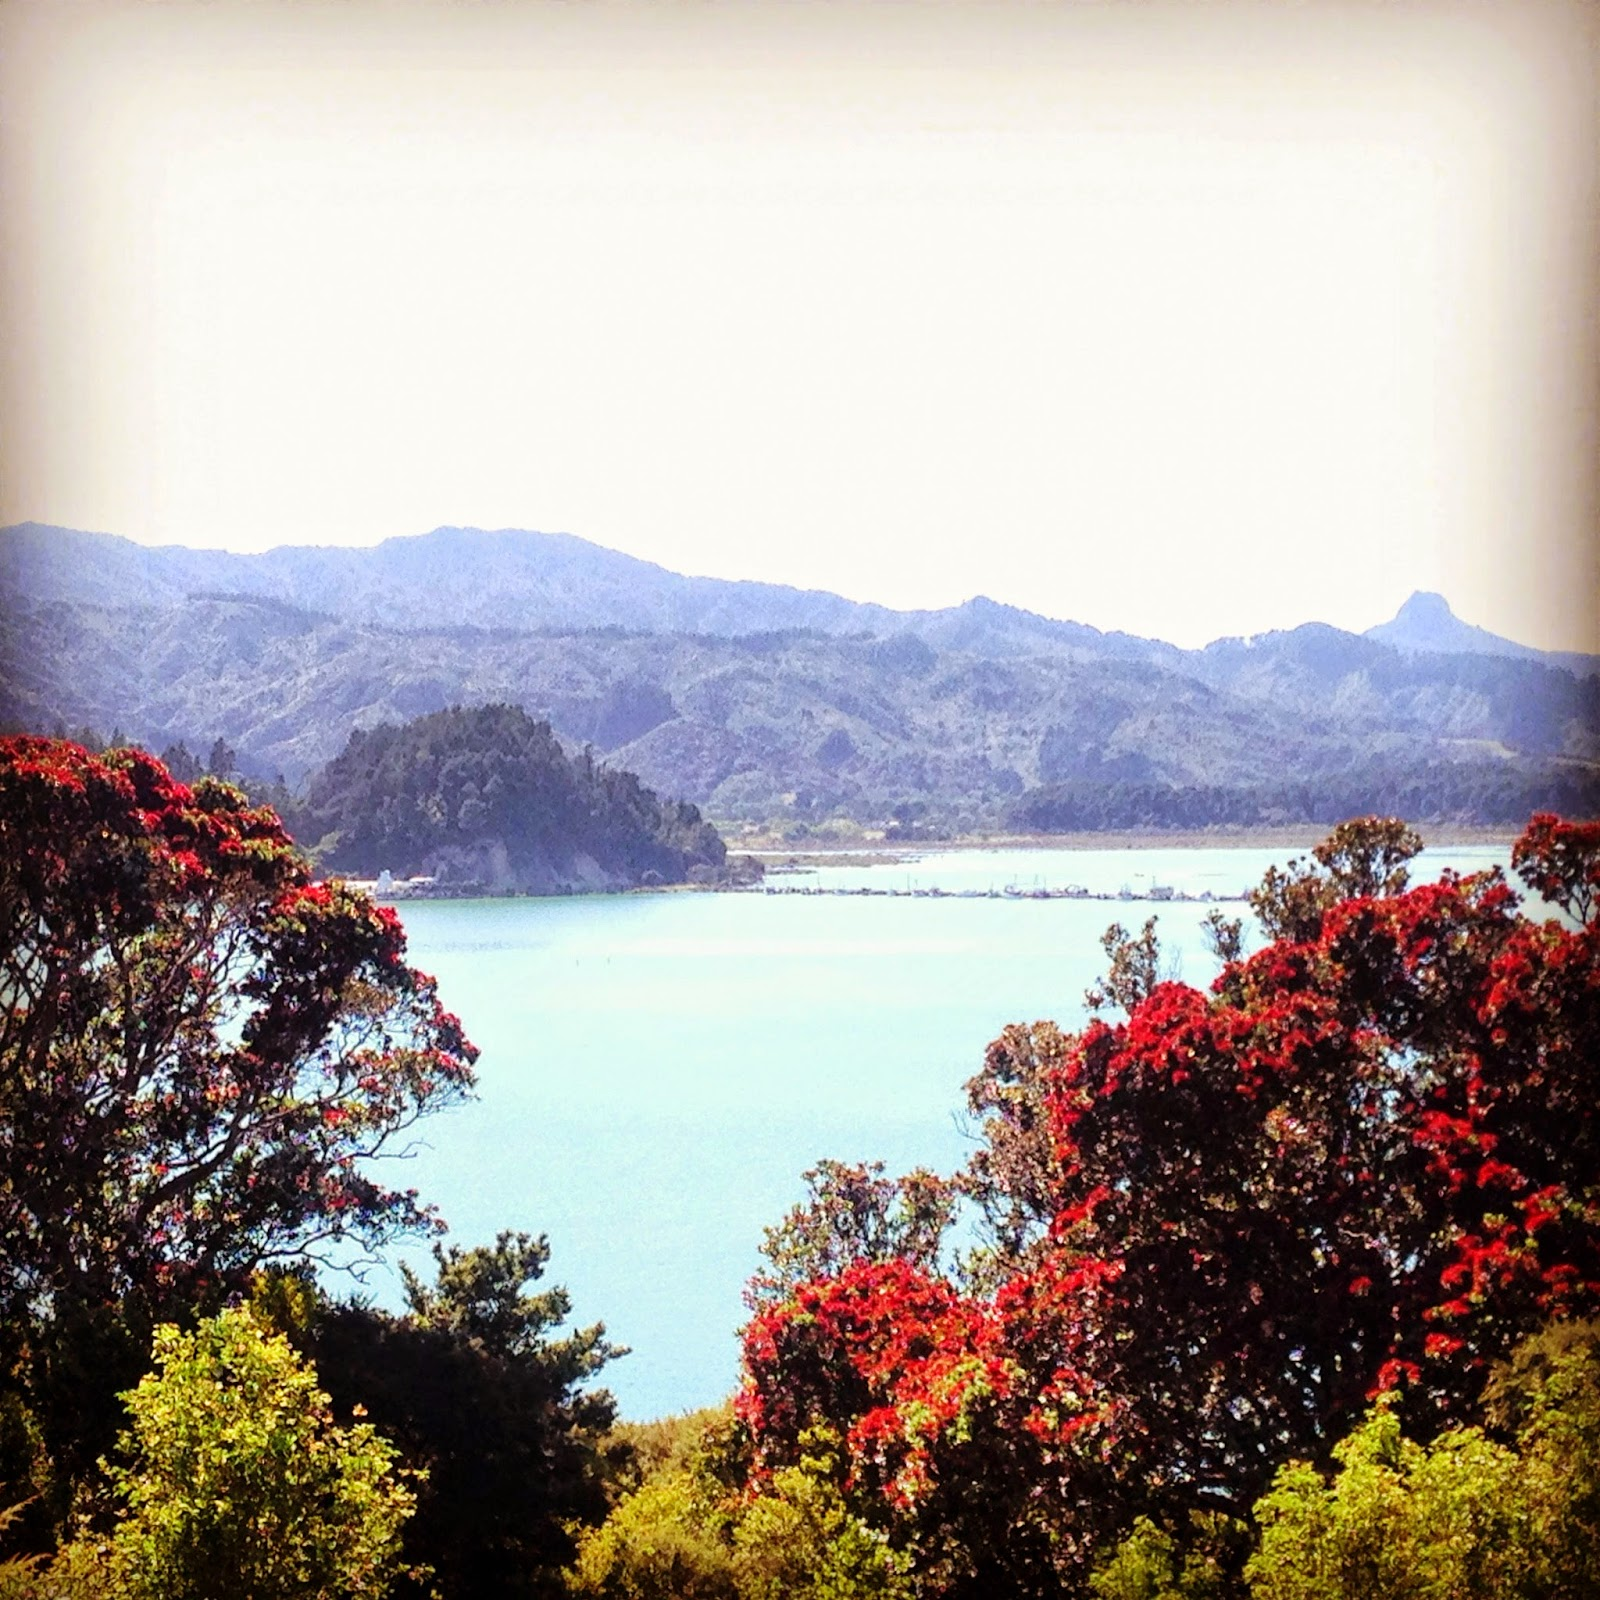 10 Things I love about The Coromandel